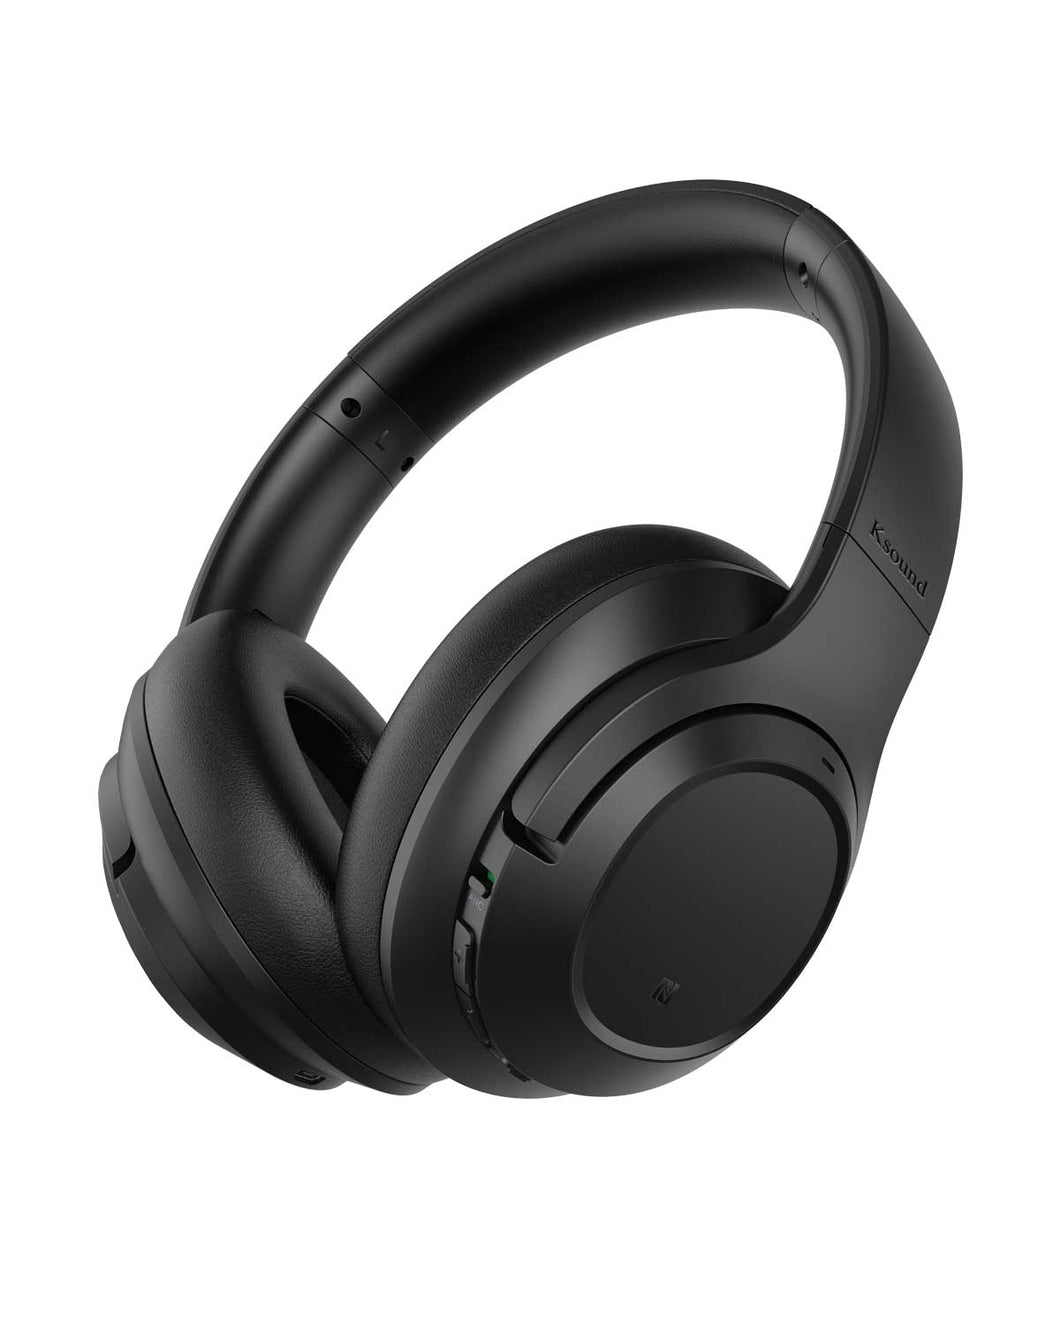 KSOUND N56 Noise Cancelling Hybrid Deep Bass Headphone